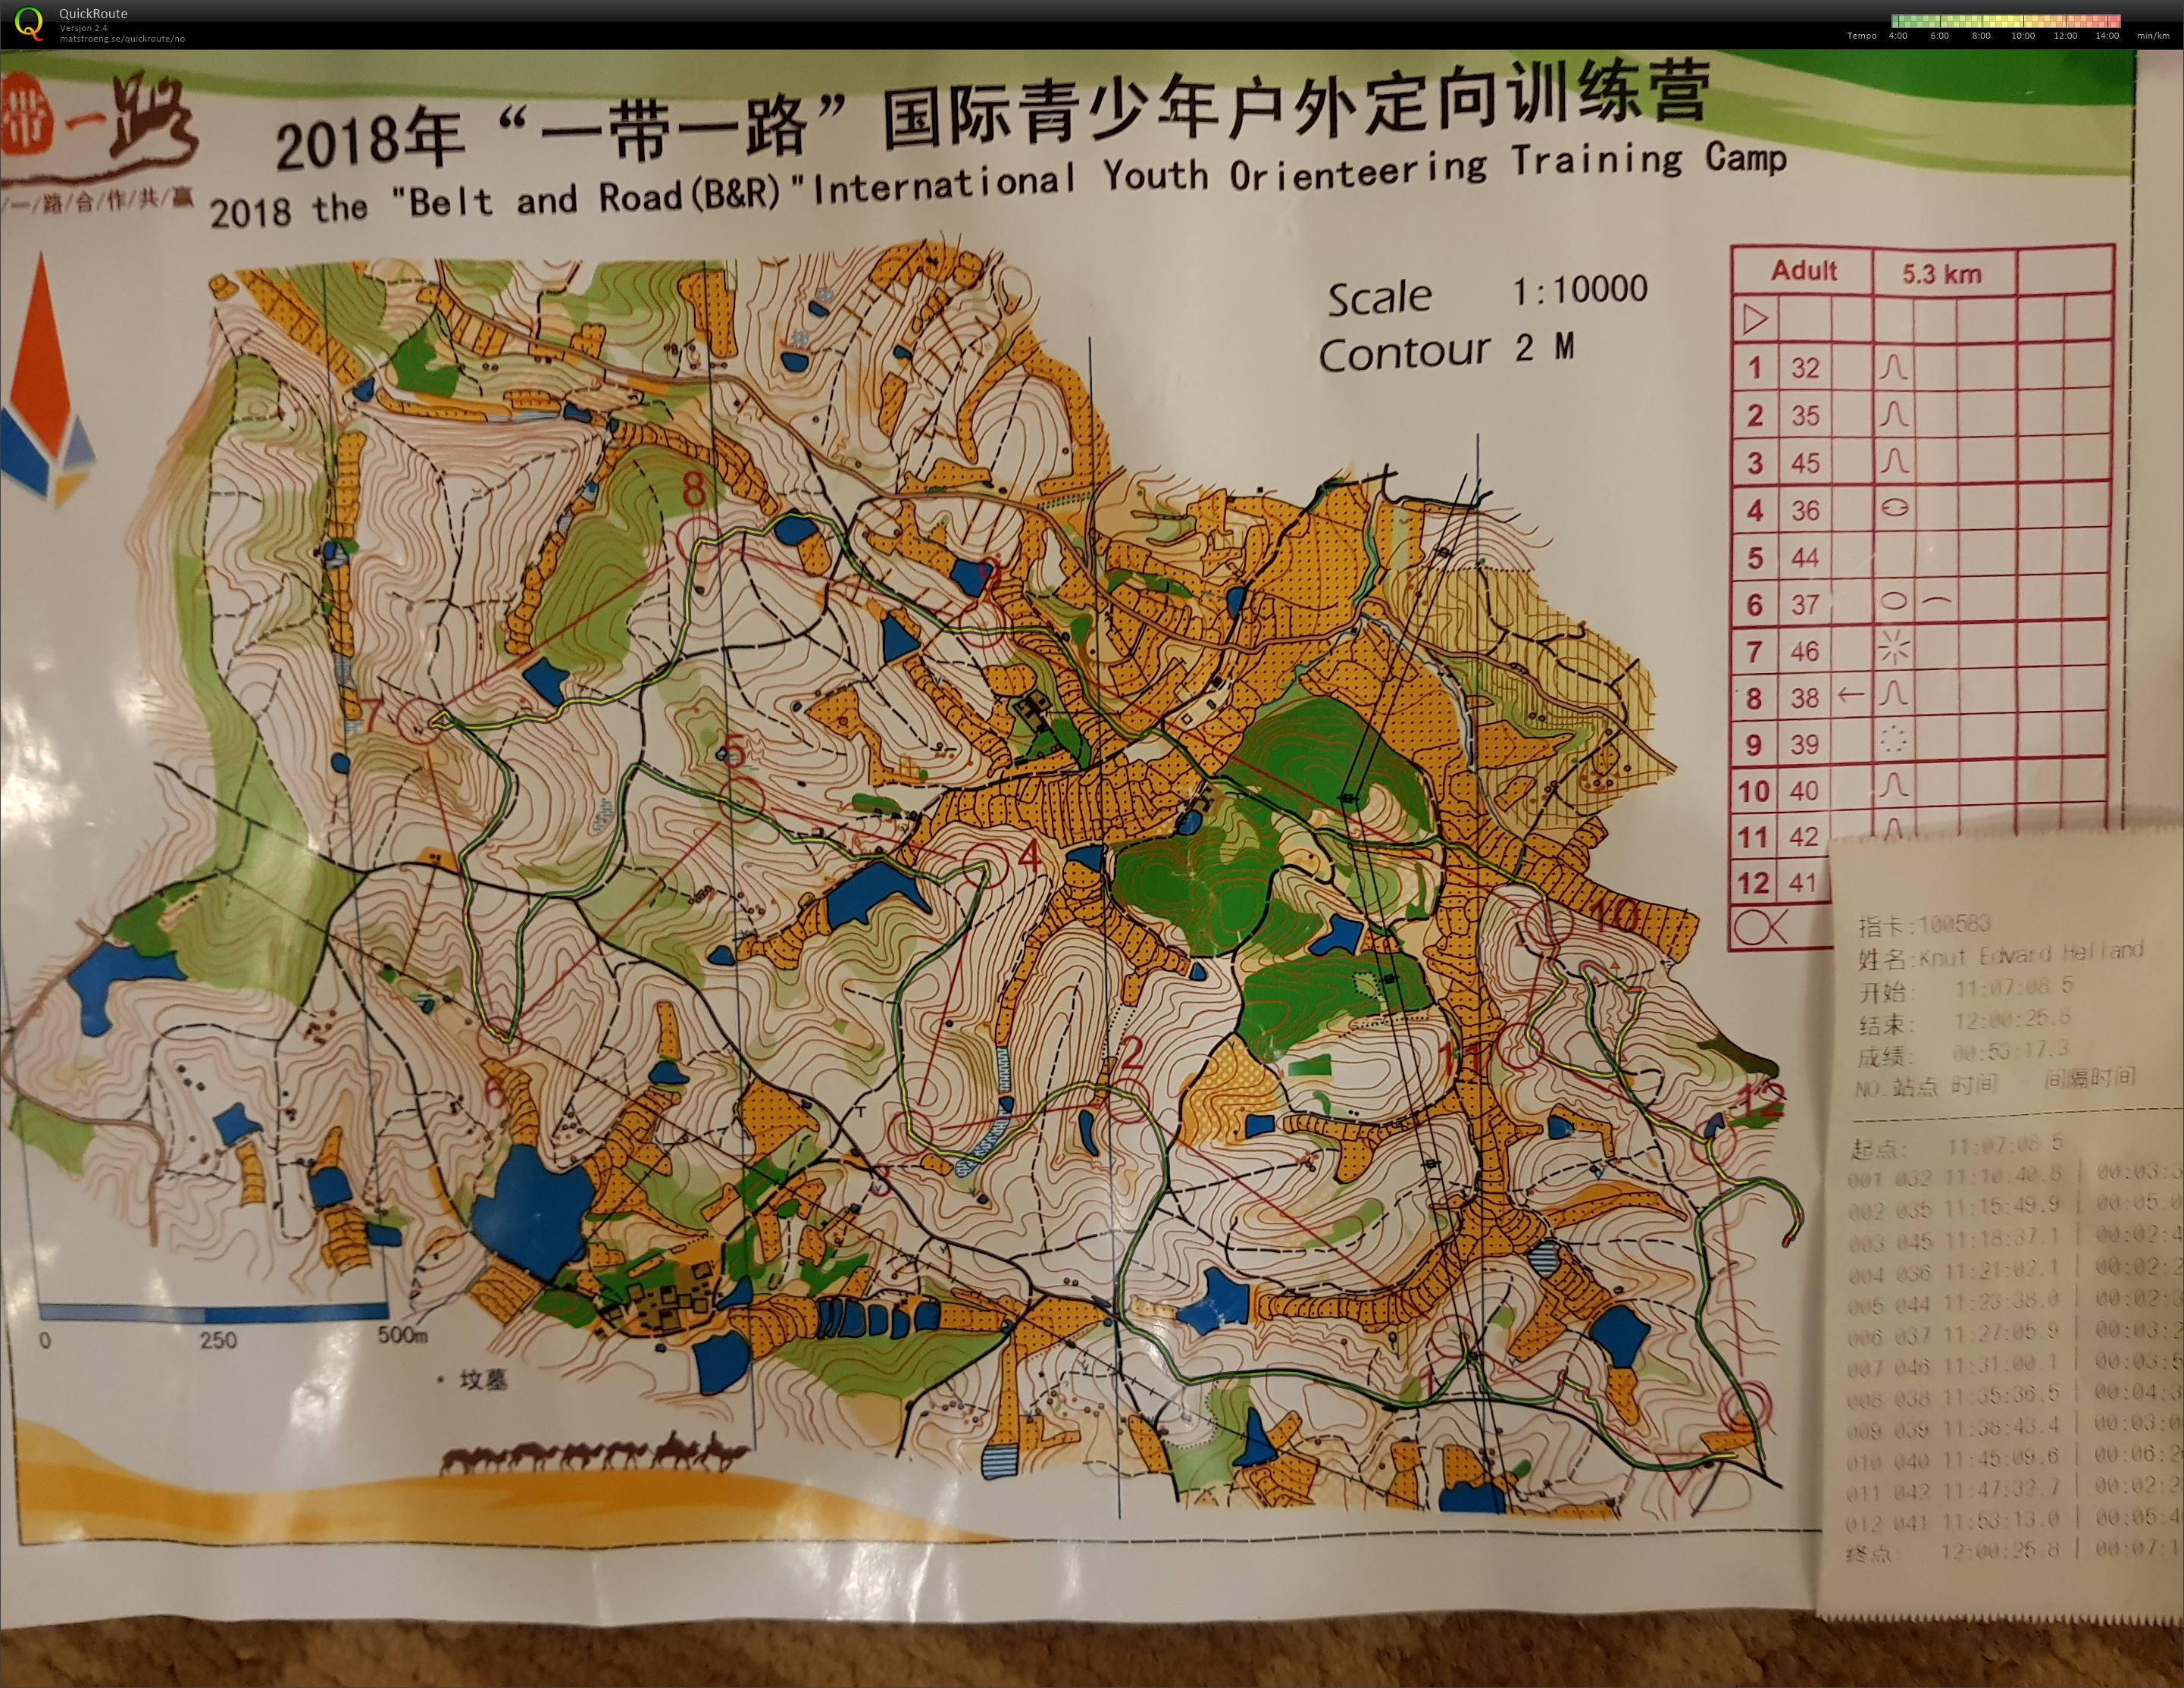 Belt and Road International Youth Orienteering Camp (25.10.2018)